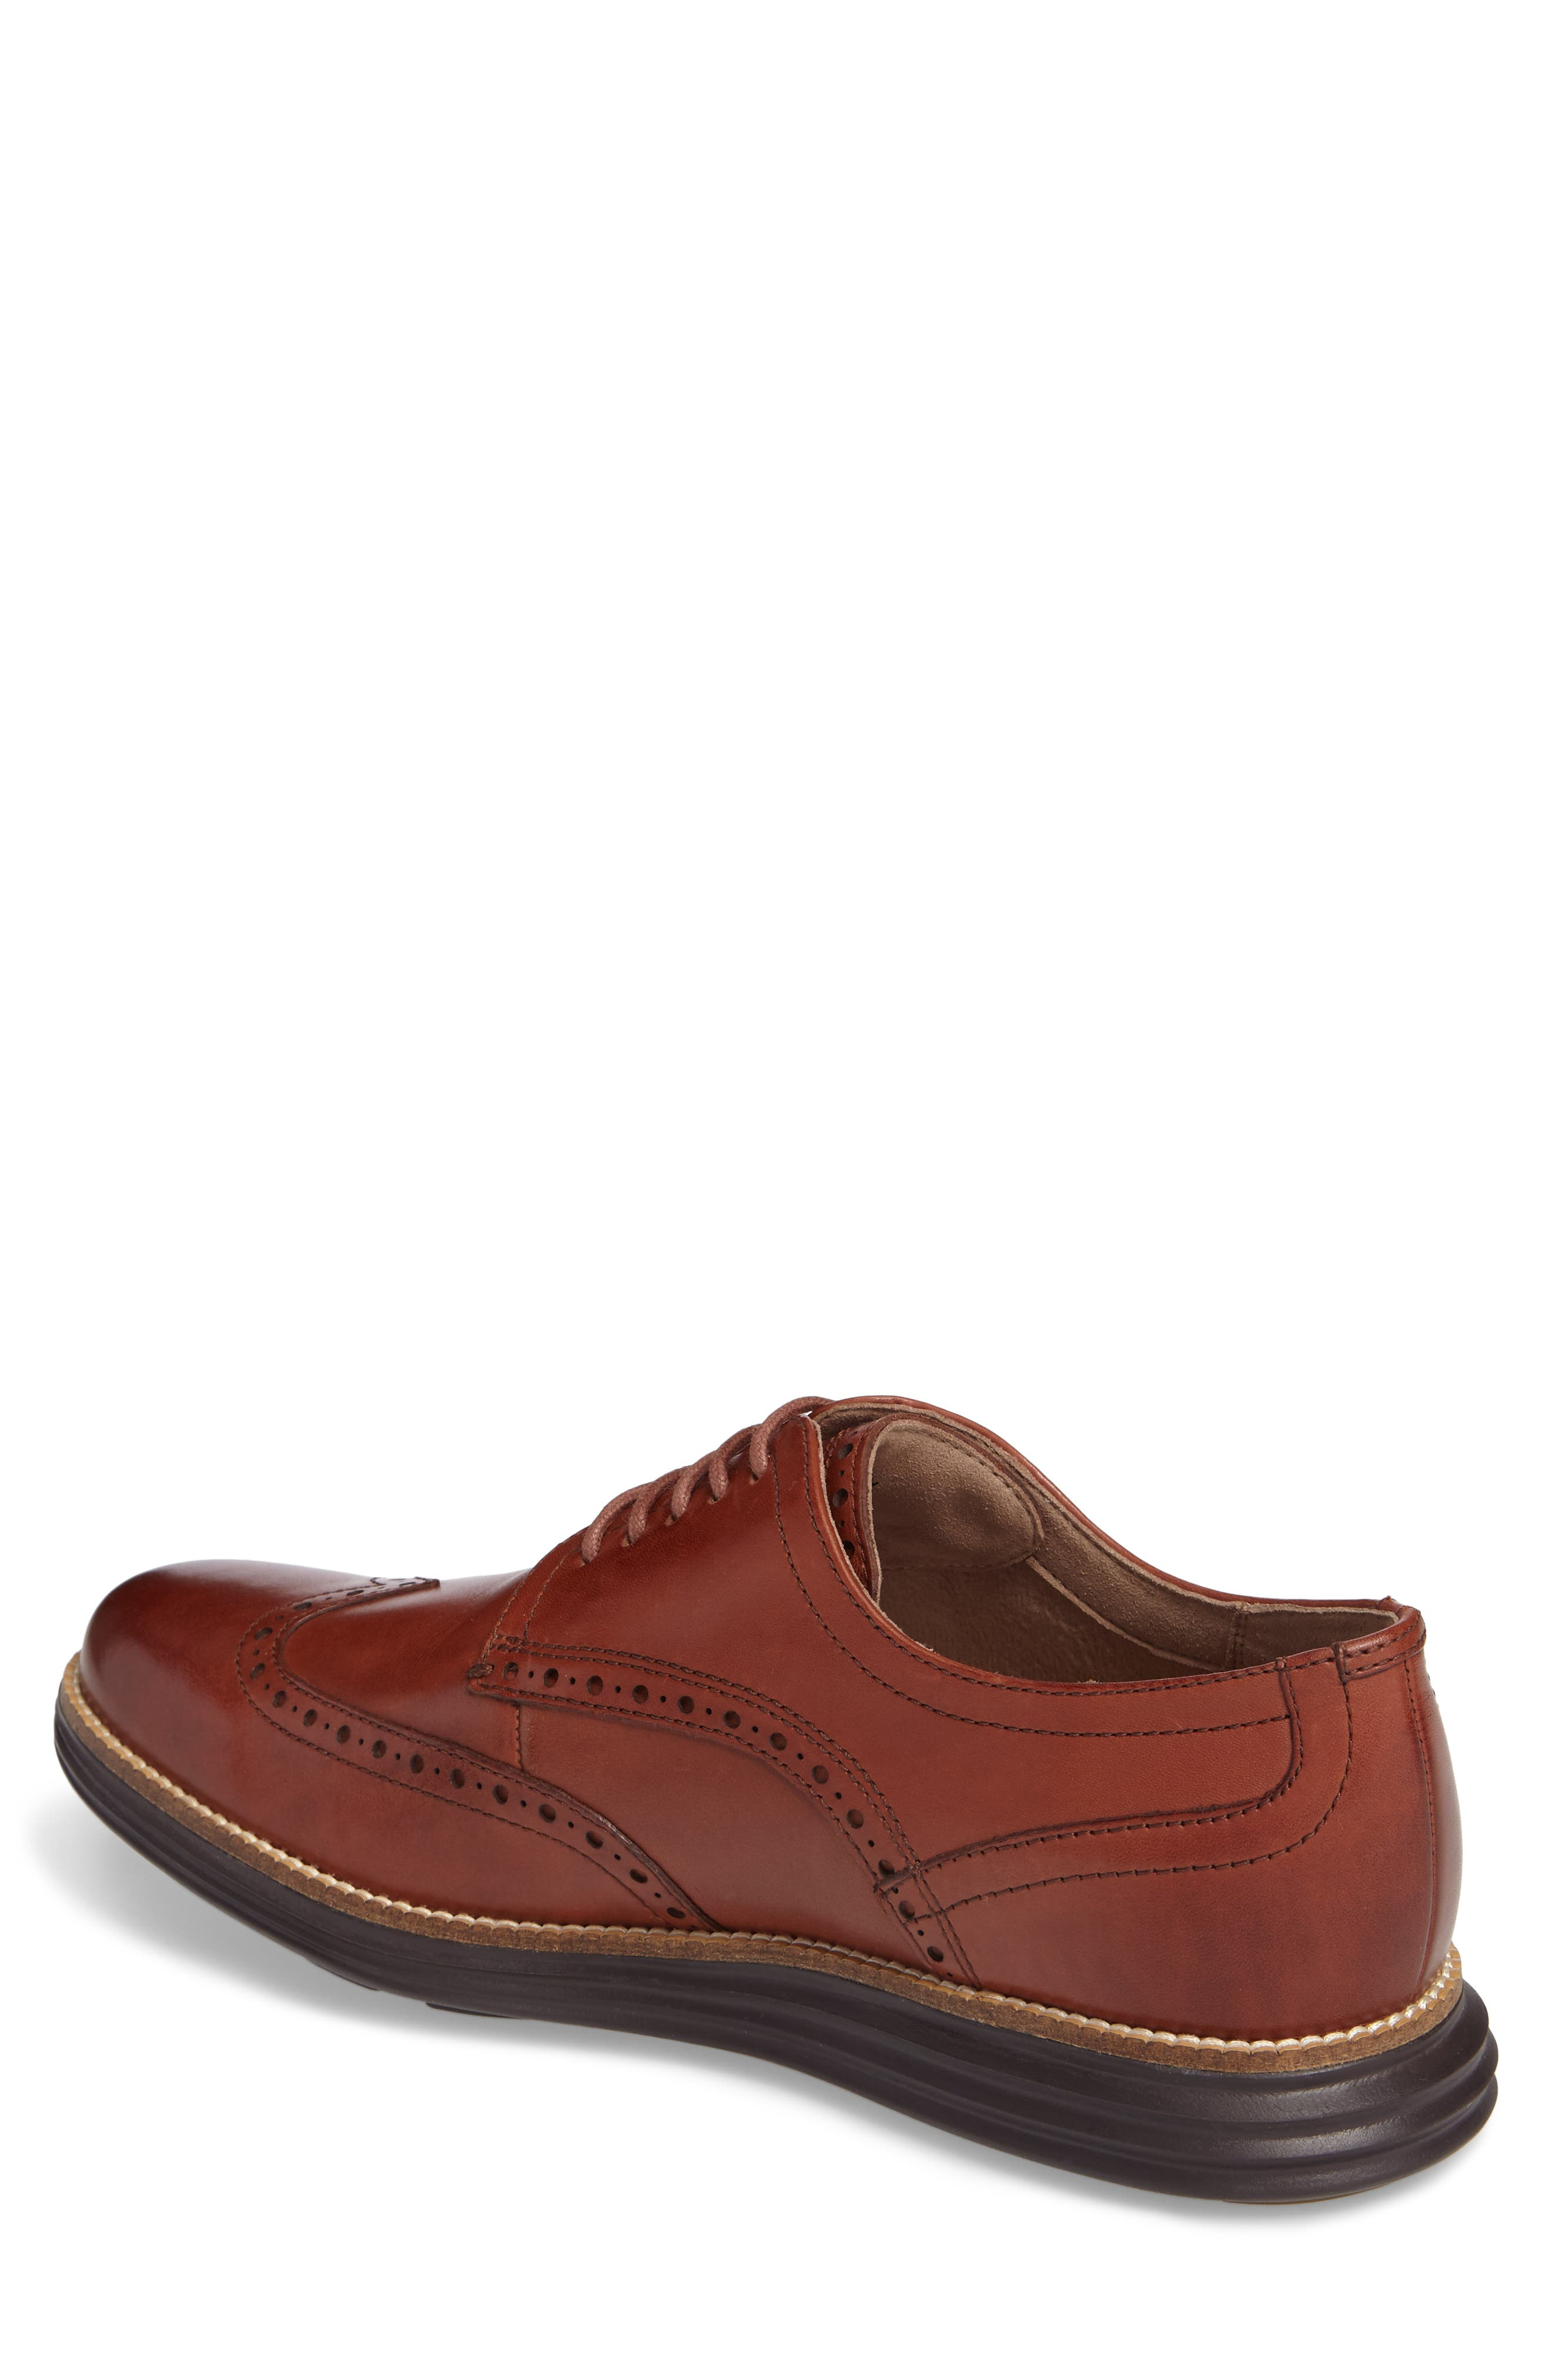 COLE HAAN, Original Grand Wingtip, Alternate thumbnail 2, color, WOODBURY/ JAVA LEATHER